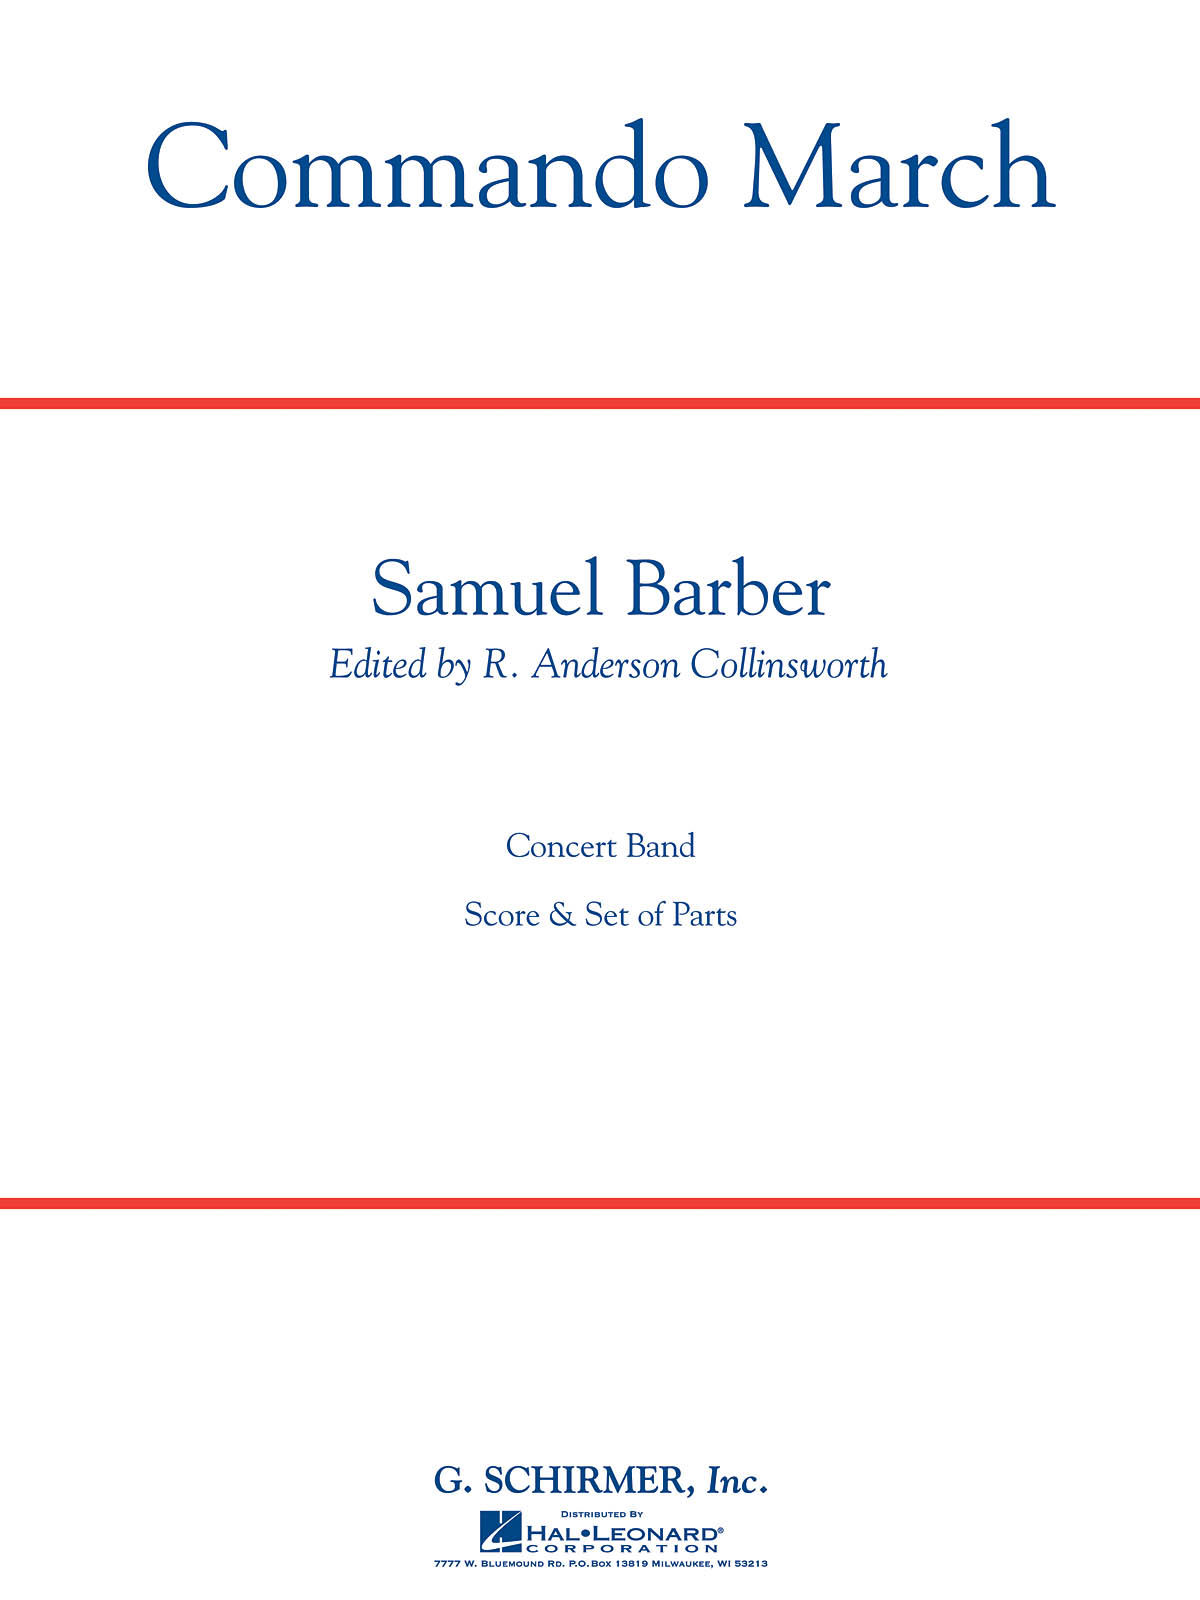 Samuel Barber: Commando March Sc/Pts: Concert Band: Score and Parts